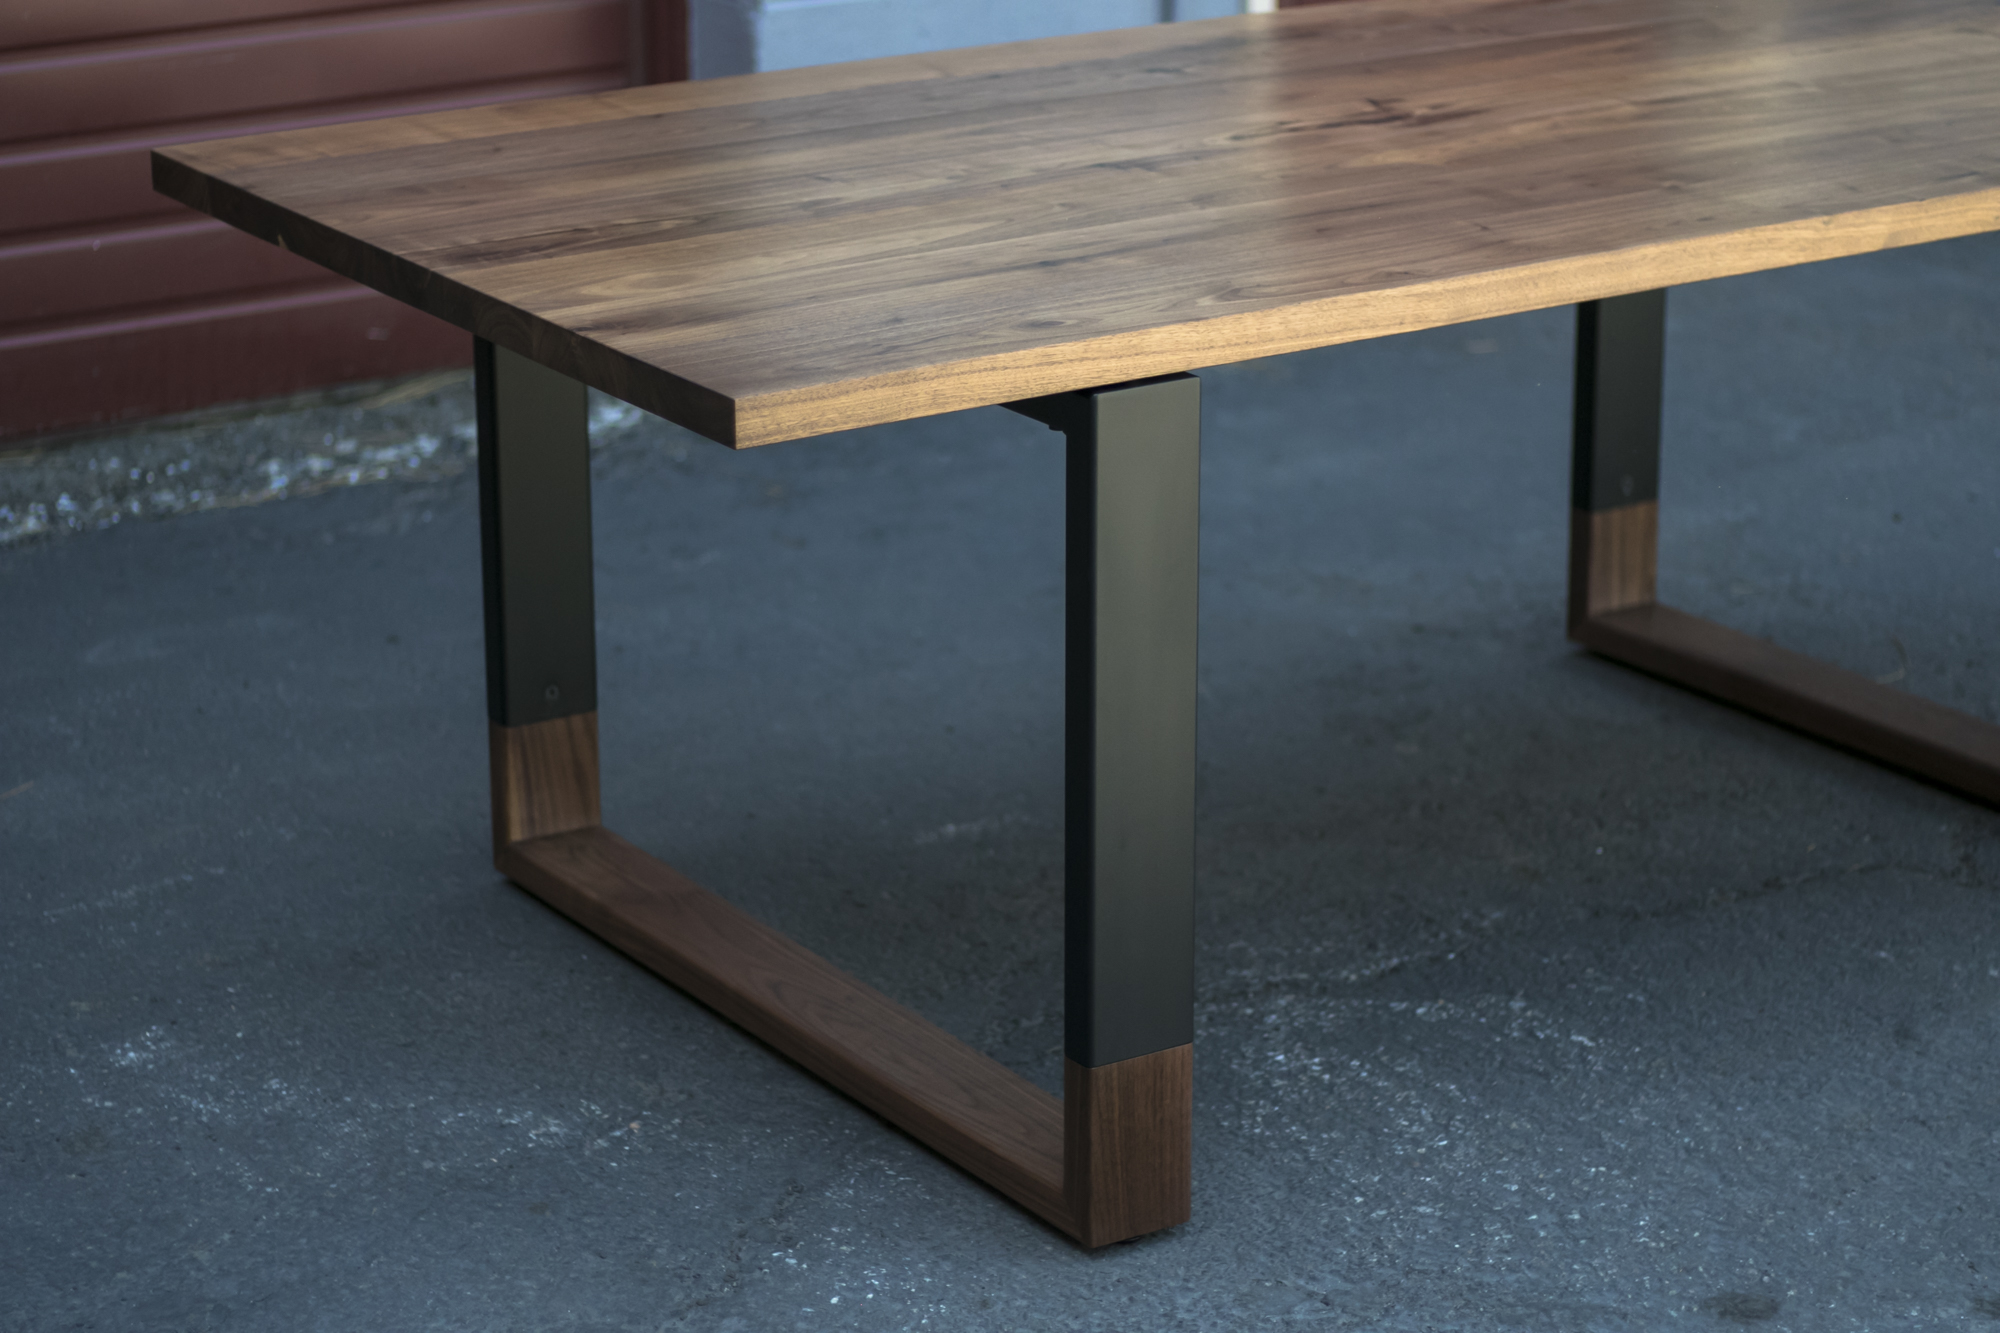 Mez Works Furniture Lake Tahoe And Sf Bay Area The Blend Walnut Steel Dining Table Wood Ced Legs